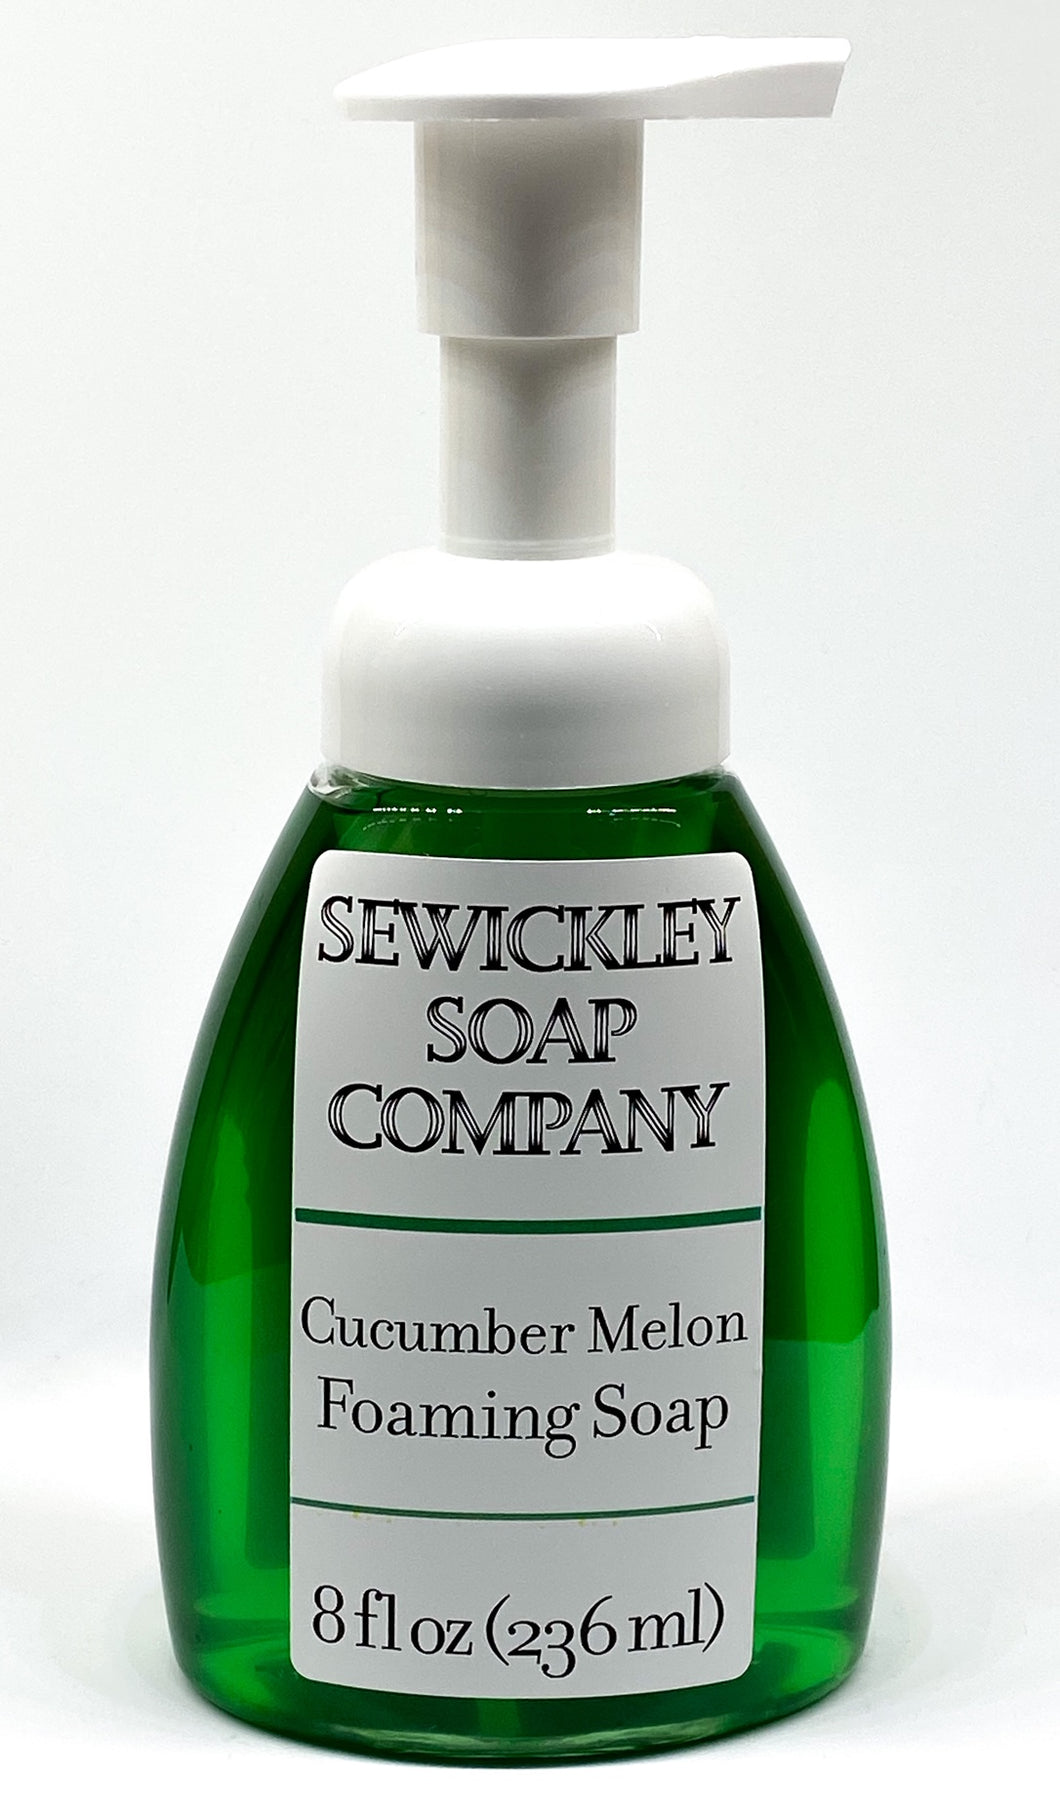 Cucumber Melon Scented Foaming Hand Soap